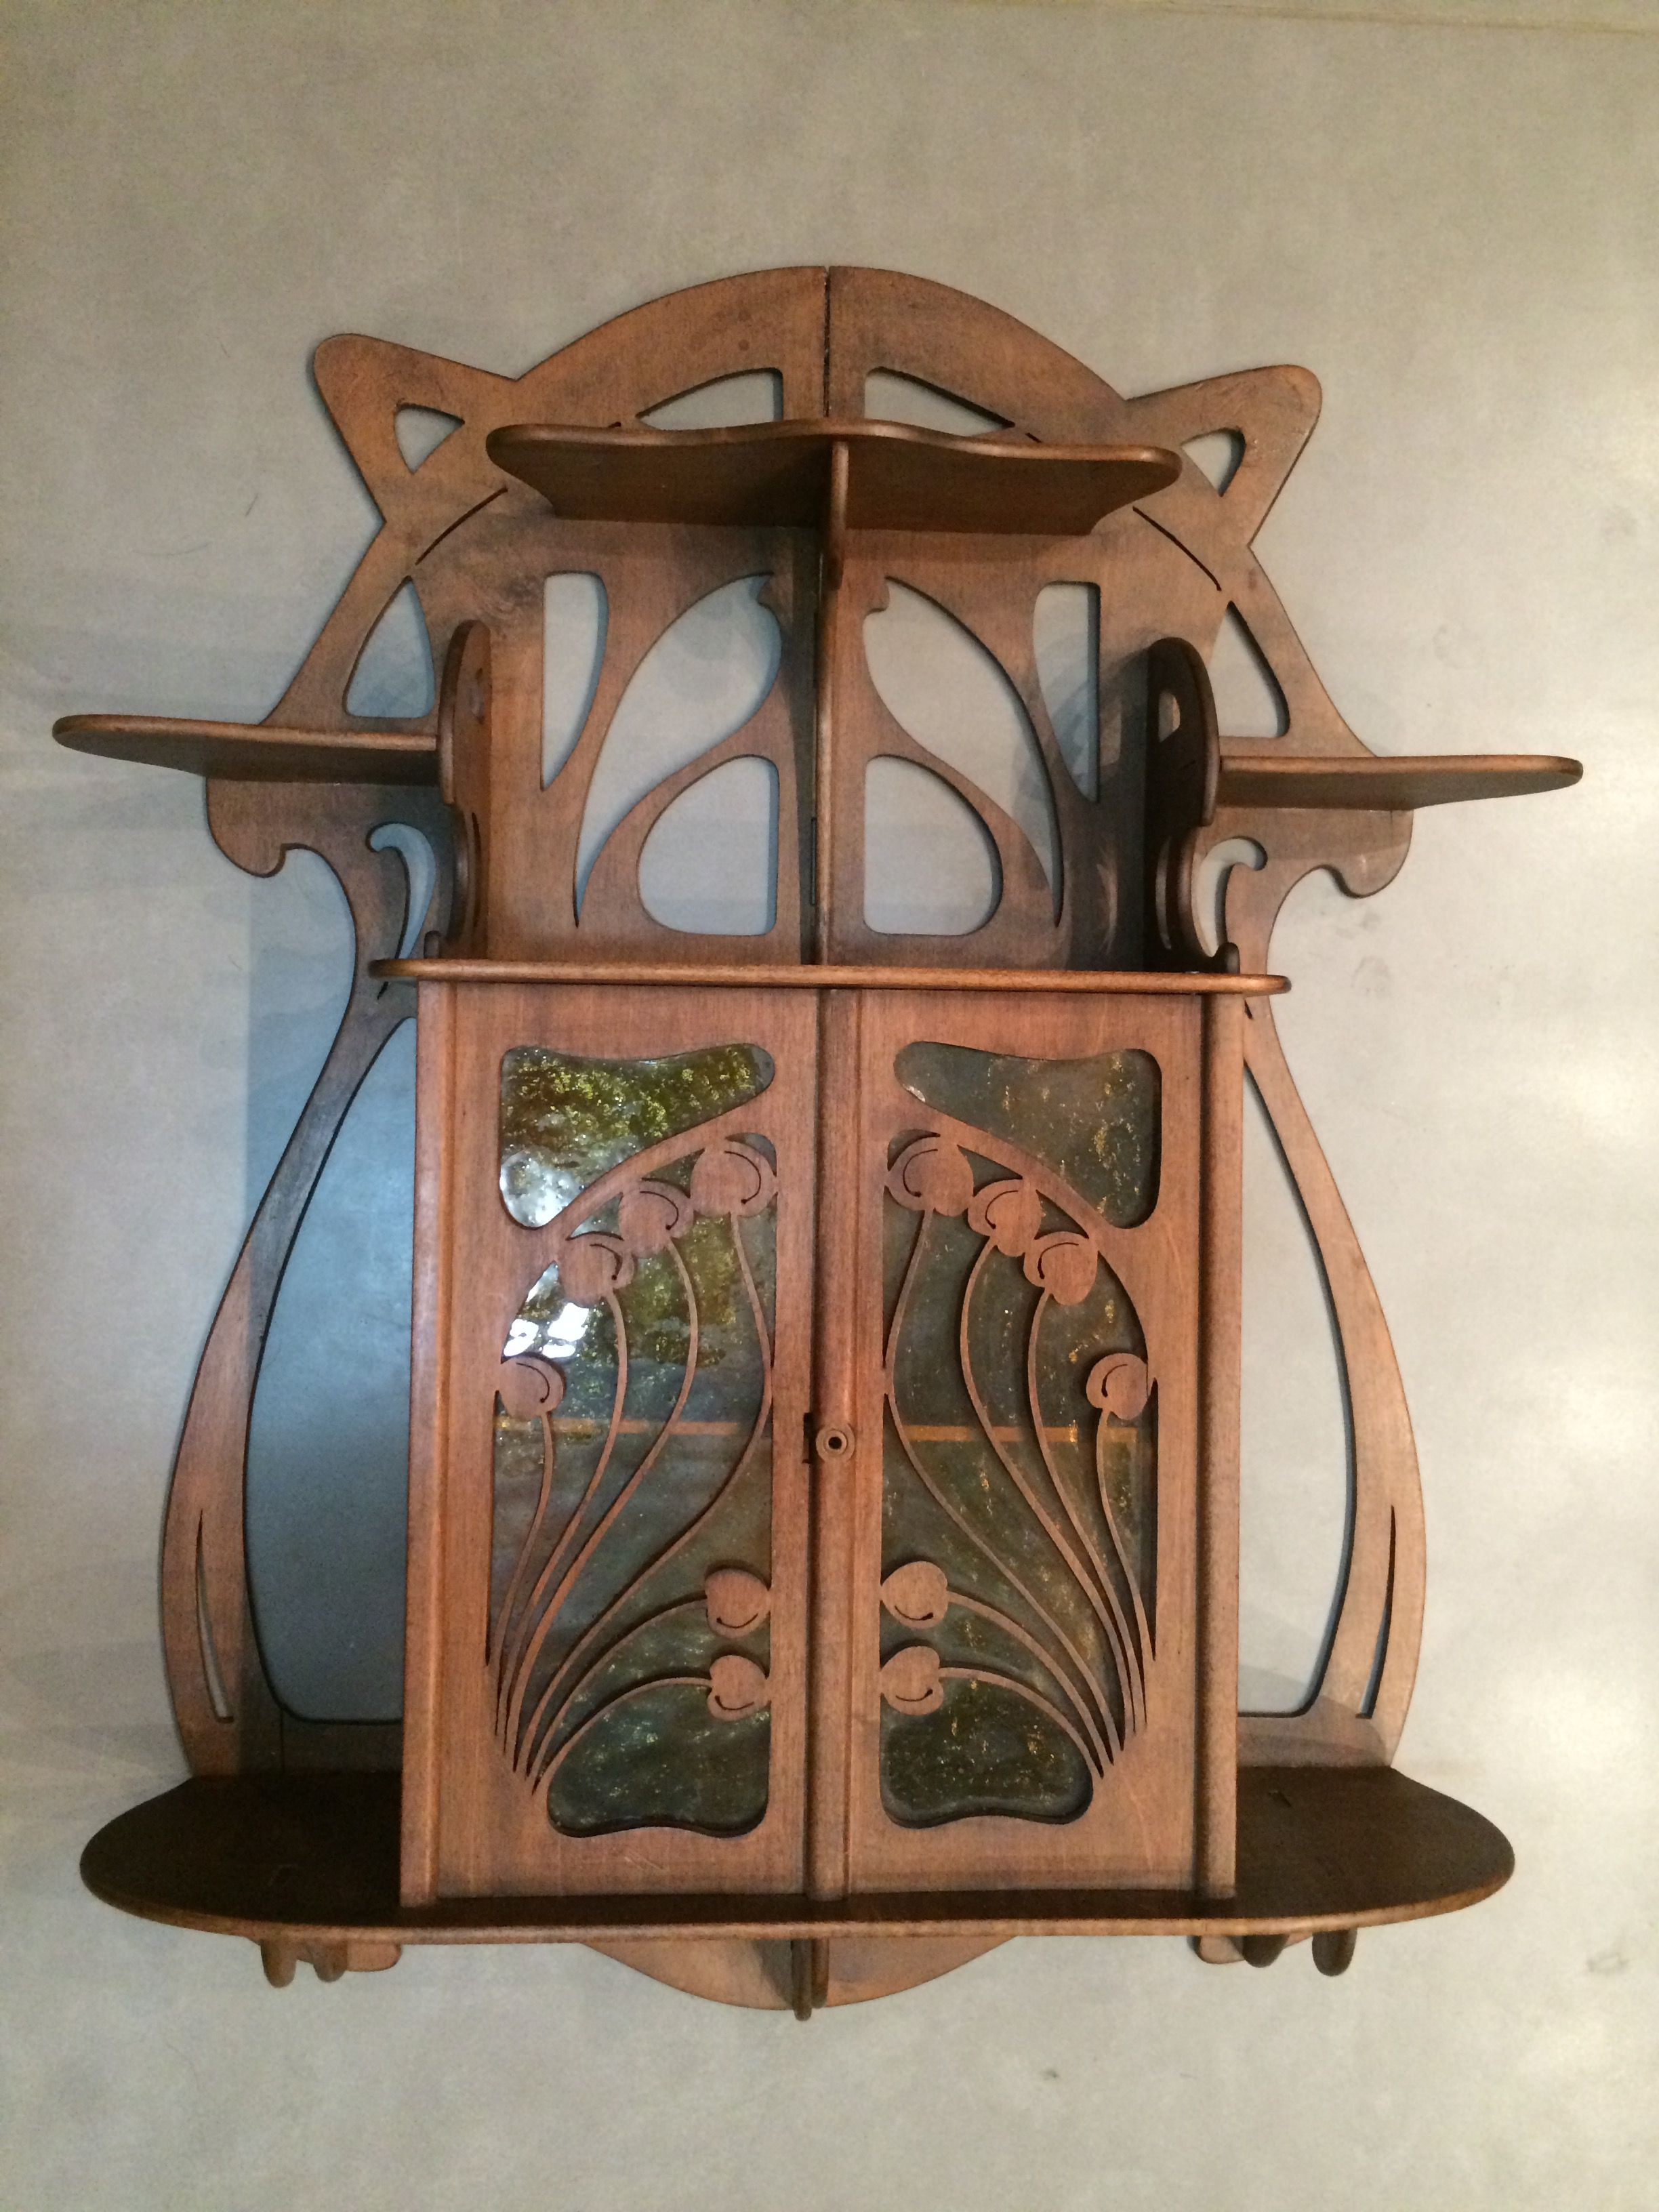 Small Art Nouveau Wall Cabinet By Eugene Gaillard Art Nouveau Decor Art Nouveau Design Art Nouveau Furniture